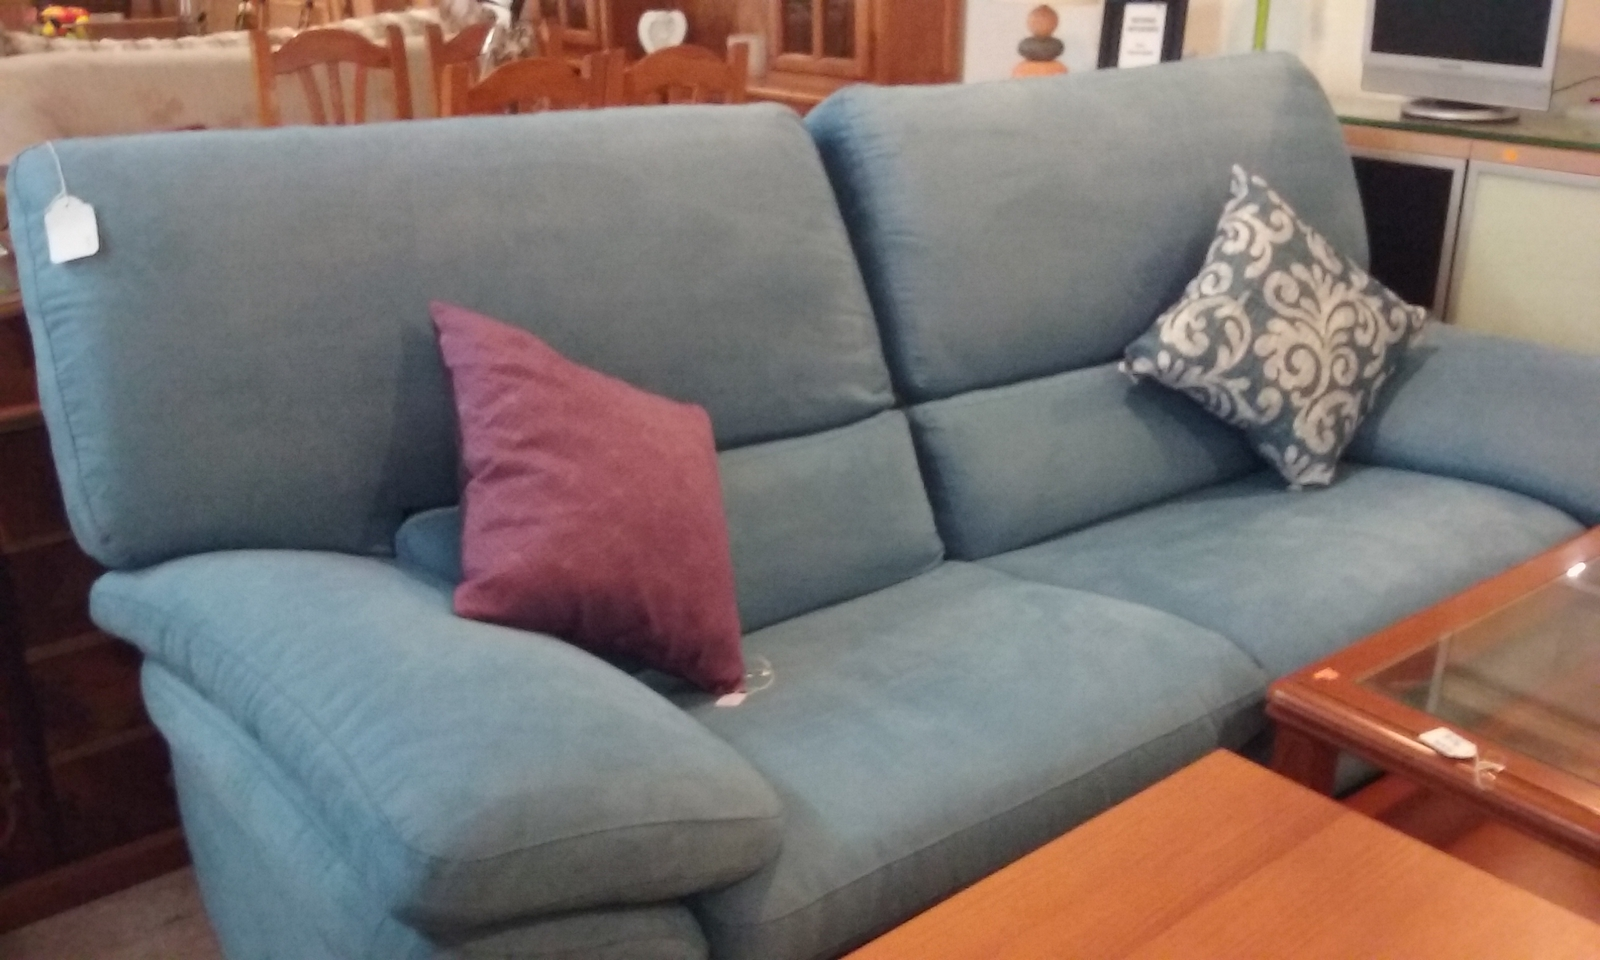 sofa beds spain sohoconcept boston new2you furniture second hand sofas for the